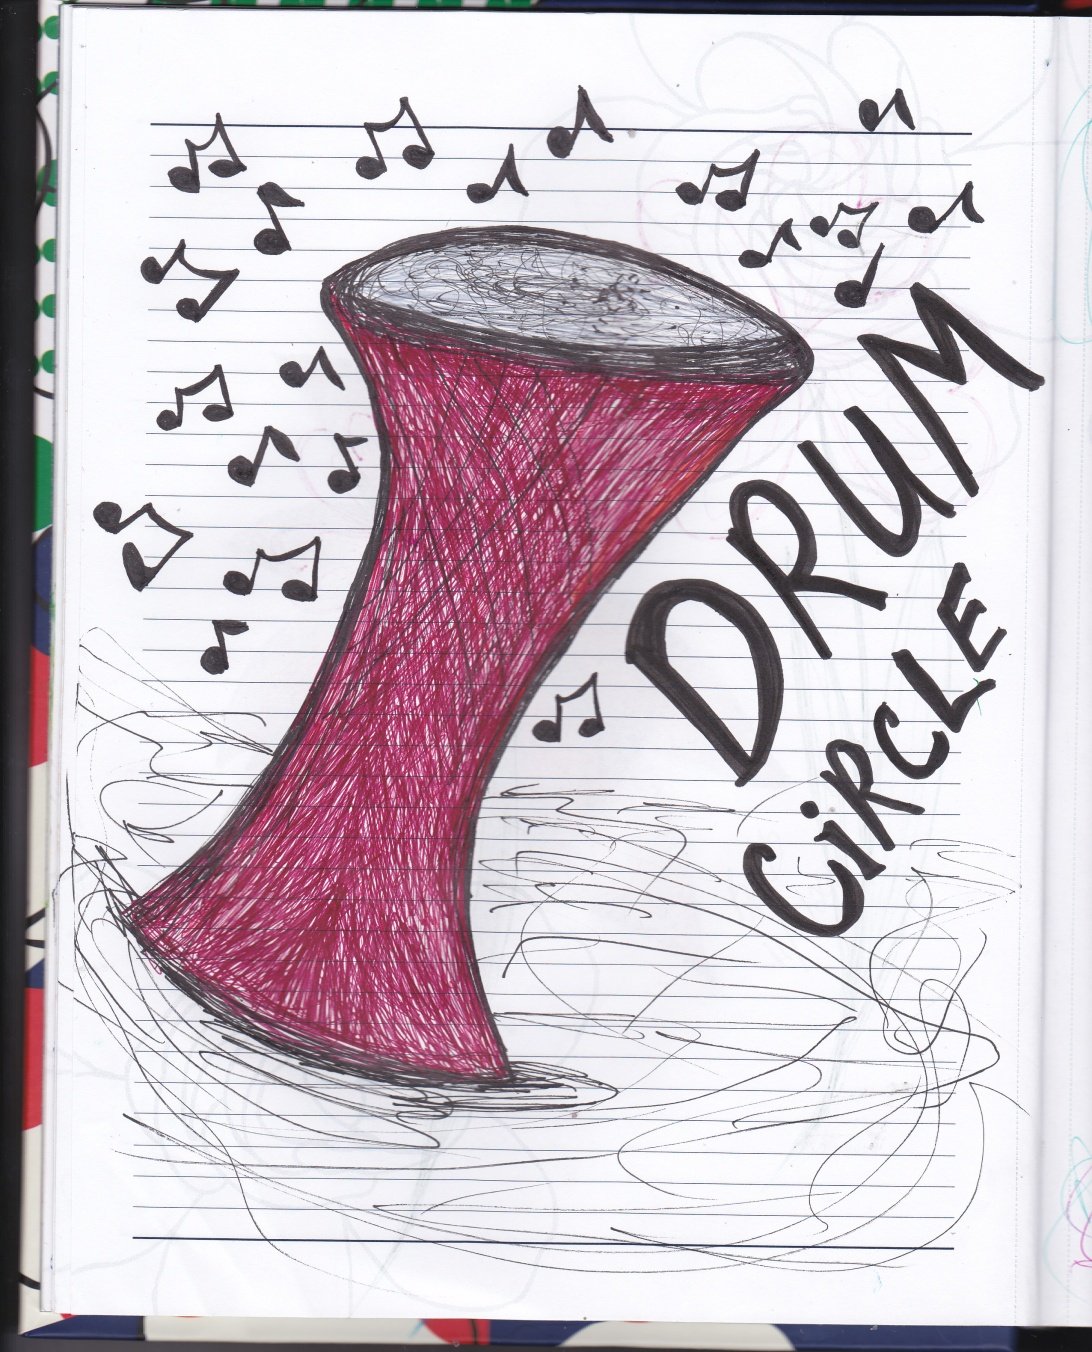 Drum with music notes - Ink Drawing